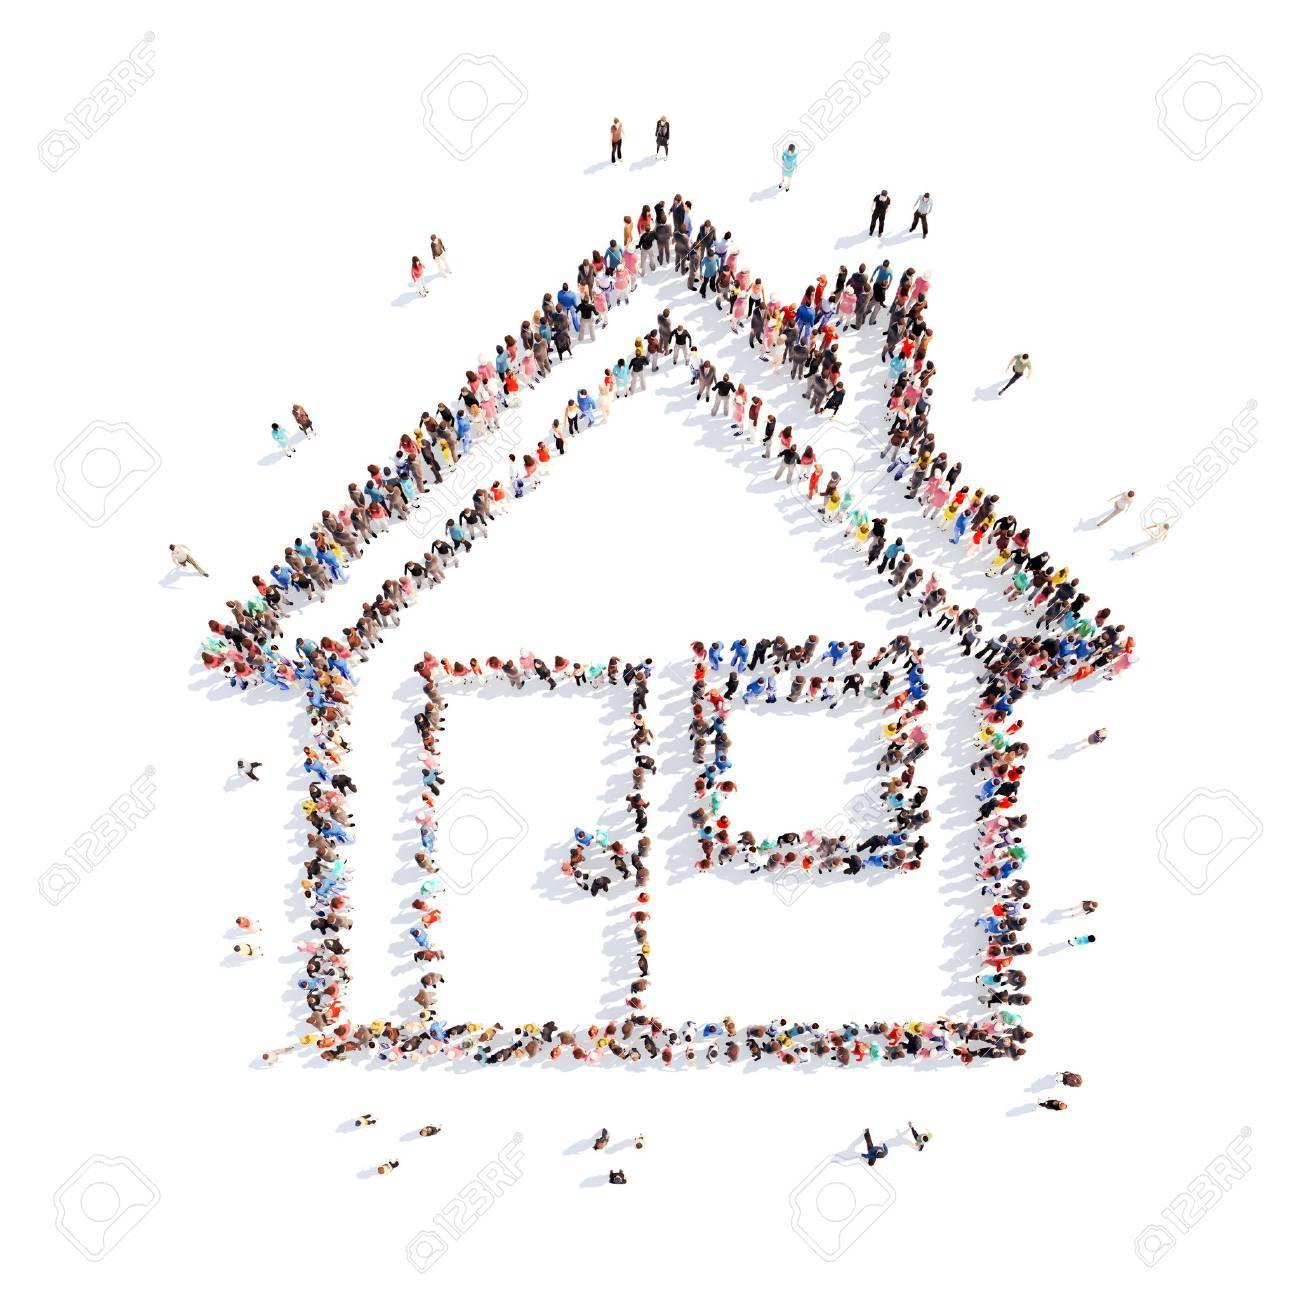 A large group of people in the shape of a house. Isolated, white background. - 39717362